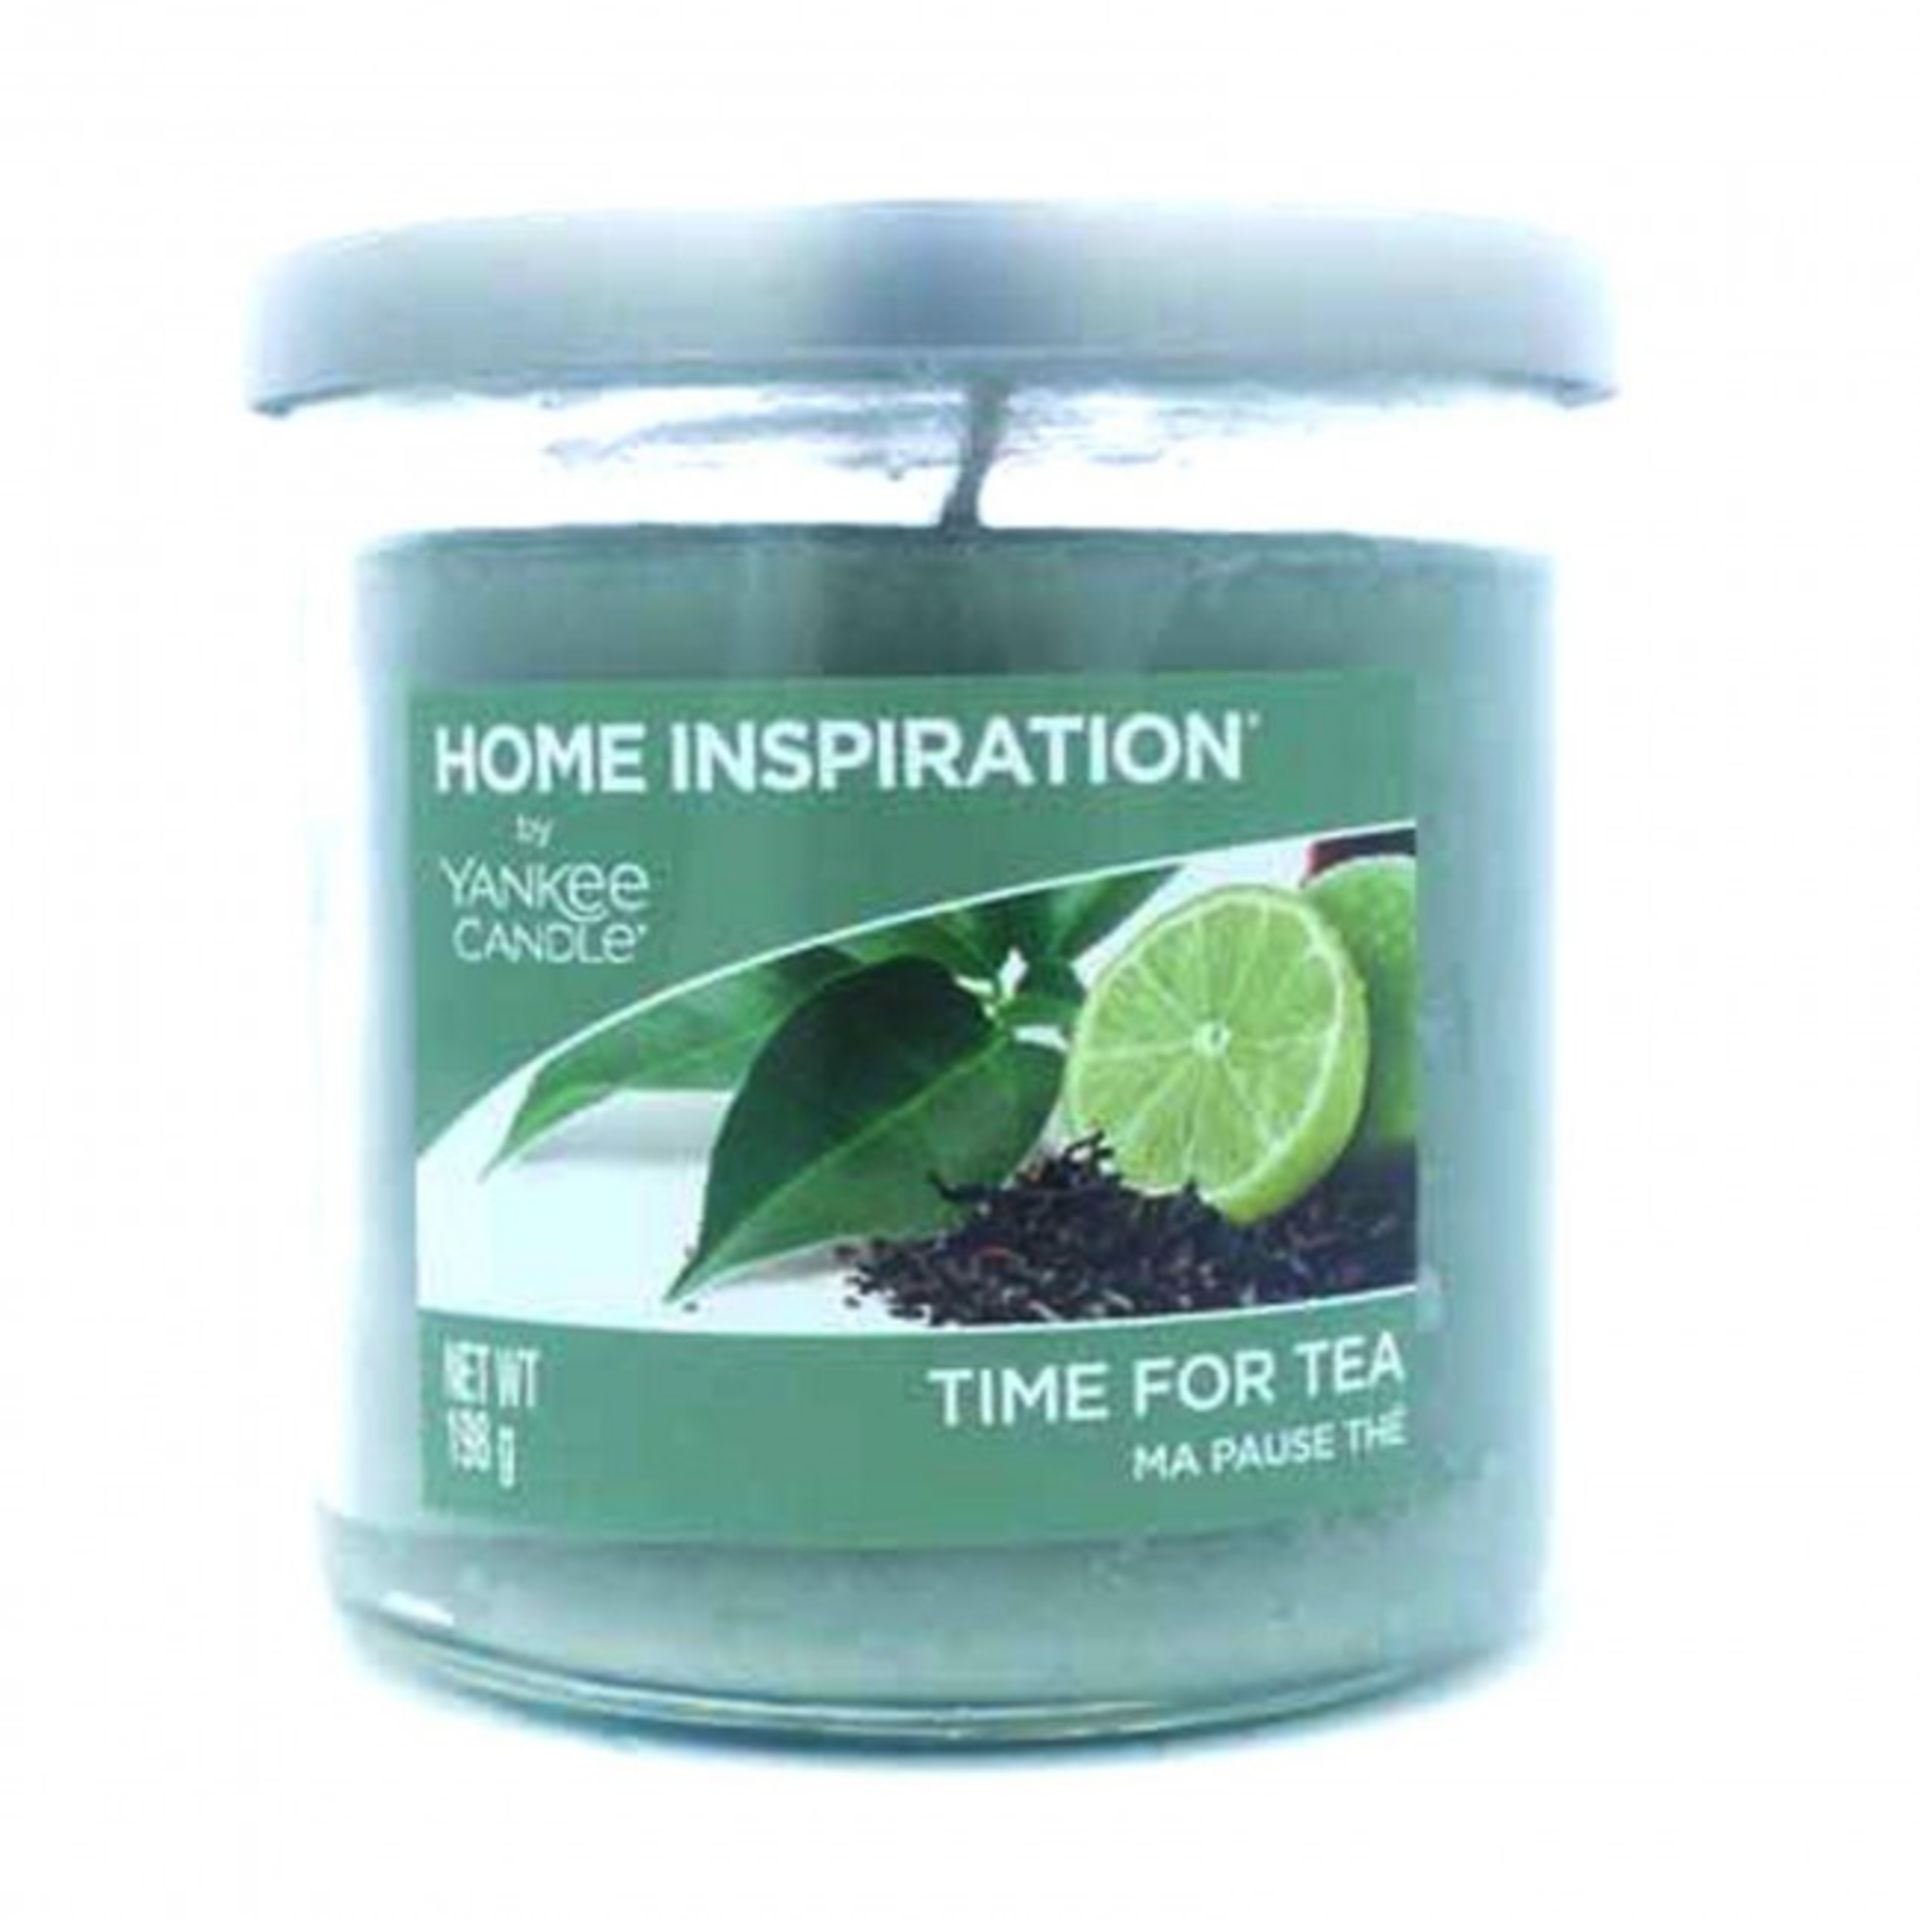 + VAT Brand New Home Inspiration by Yankee Candle Time for Tea 198g Tumbler Candle - ISP £7.99 Ebay